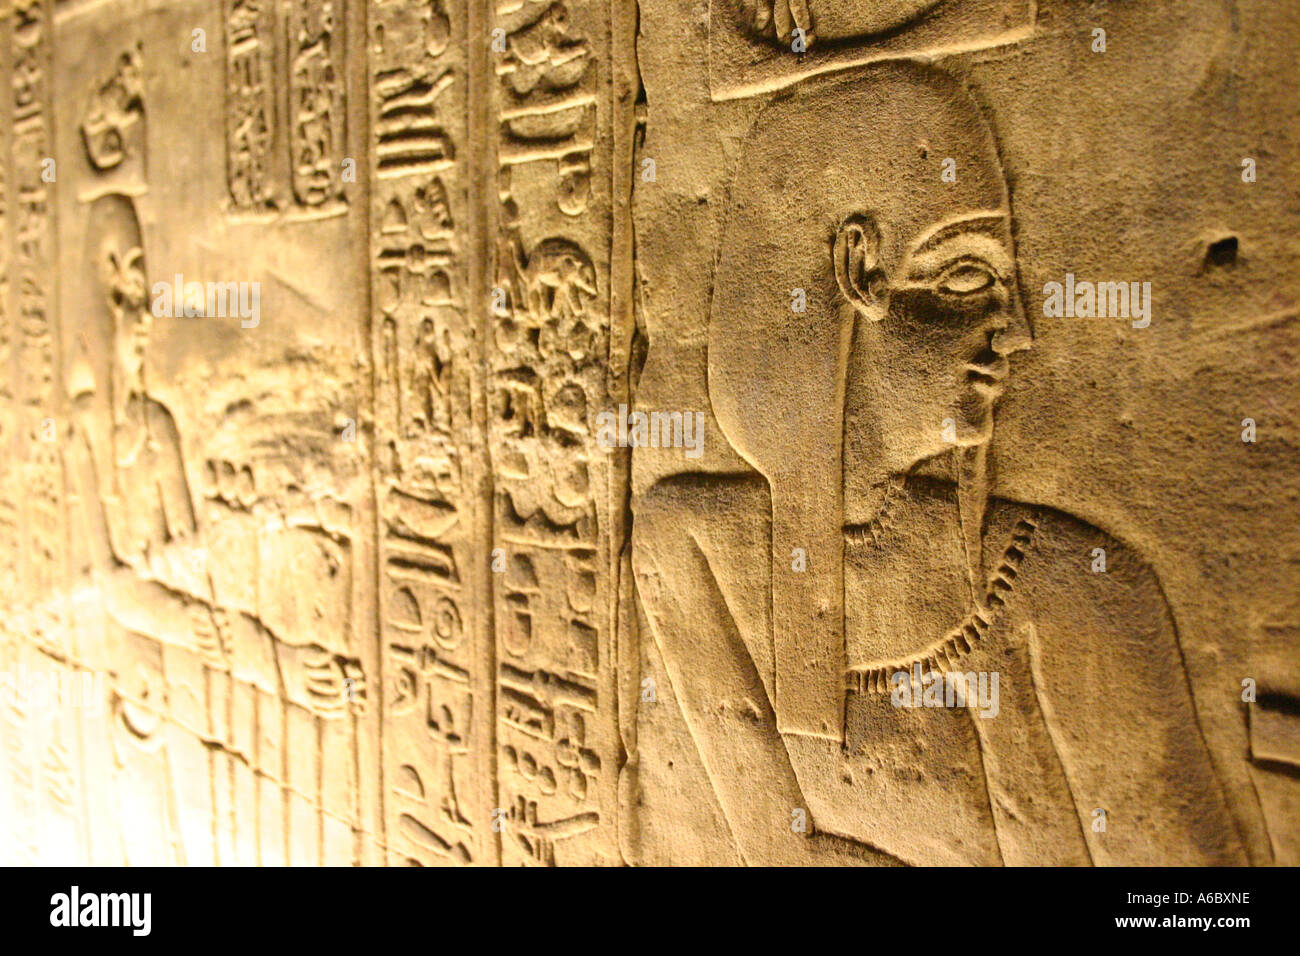 Detail of Hieroglyphs - Stock Image